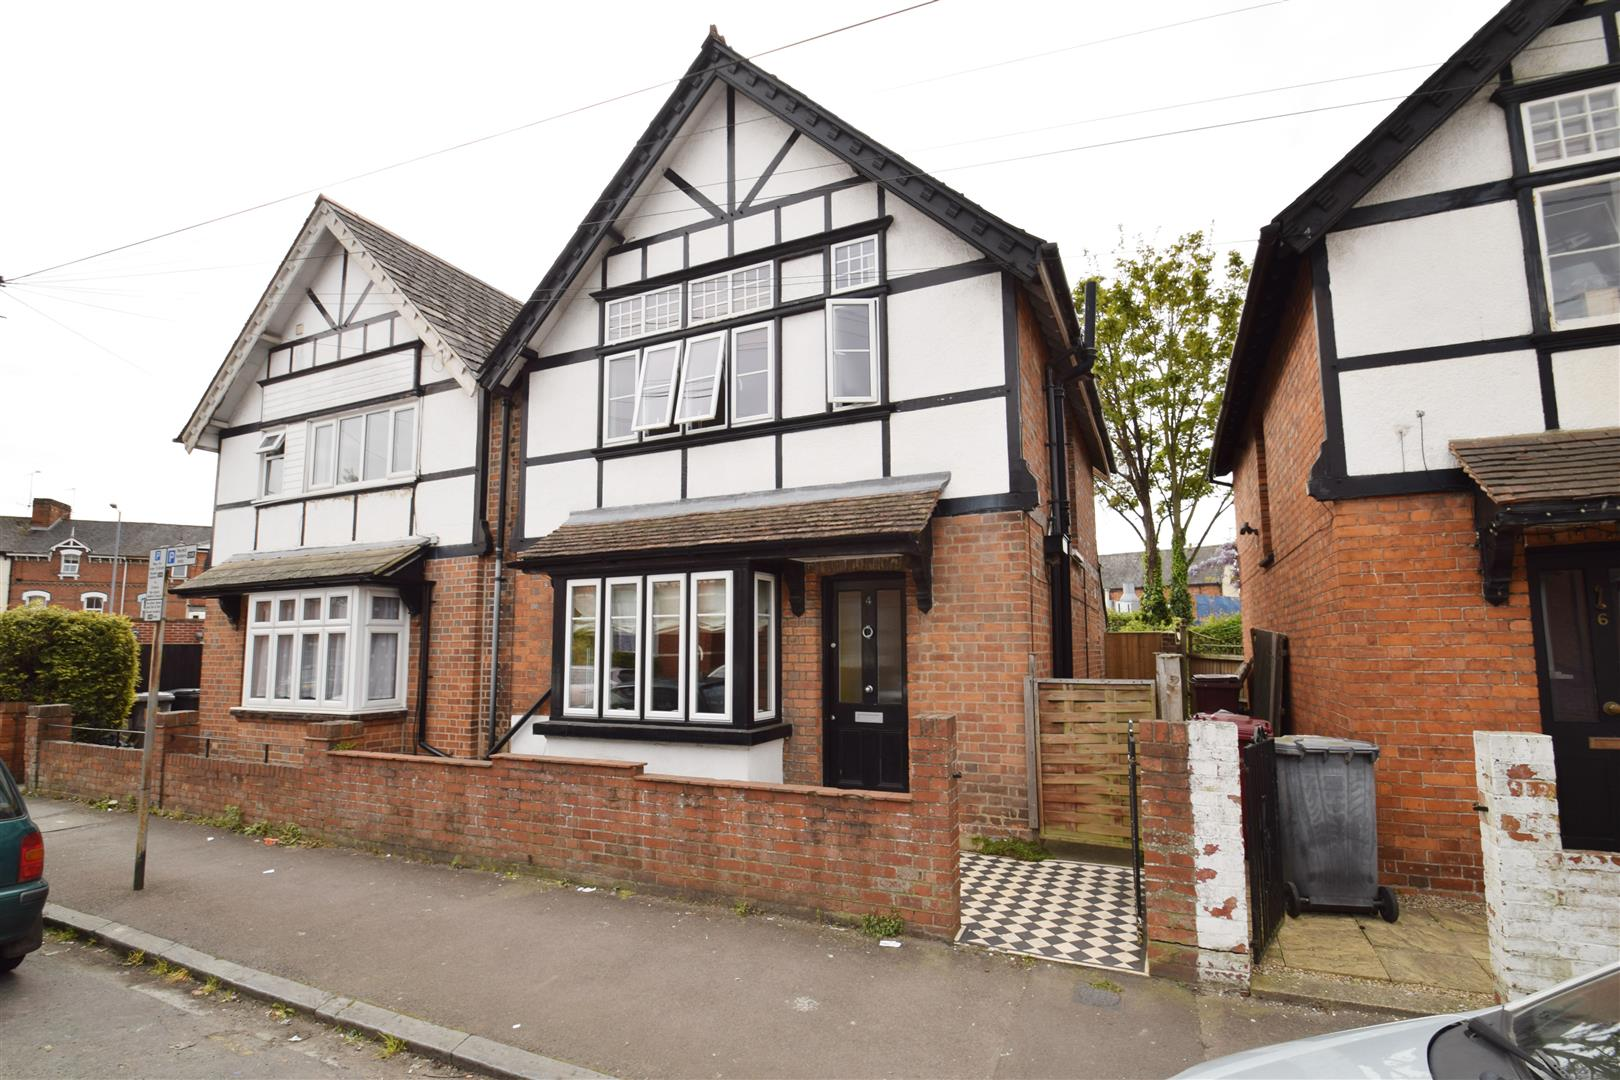 3 bedroom semi detached house for sale in reading for 3 bedroom houses to buy in reading